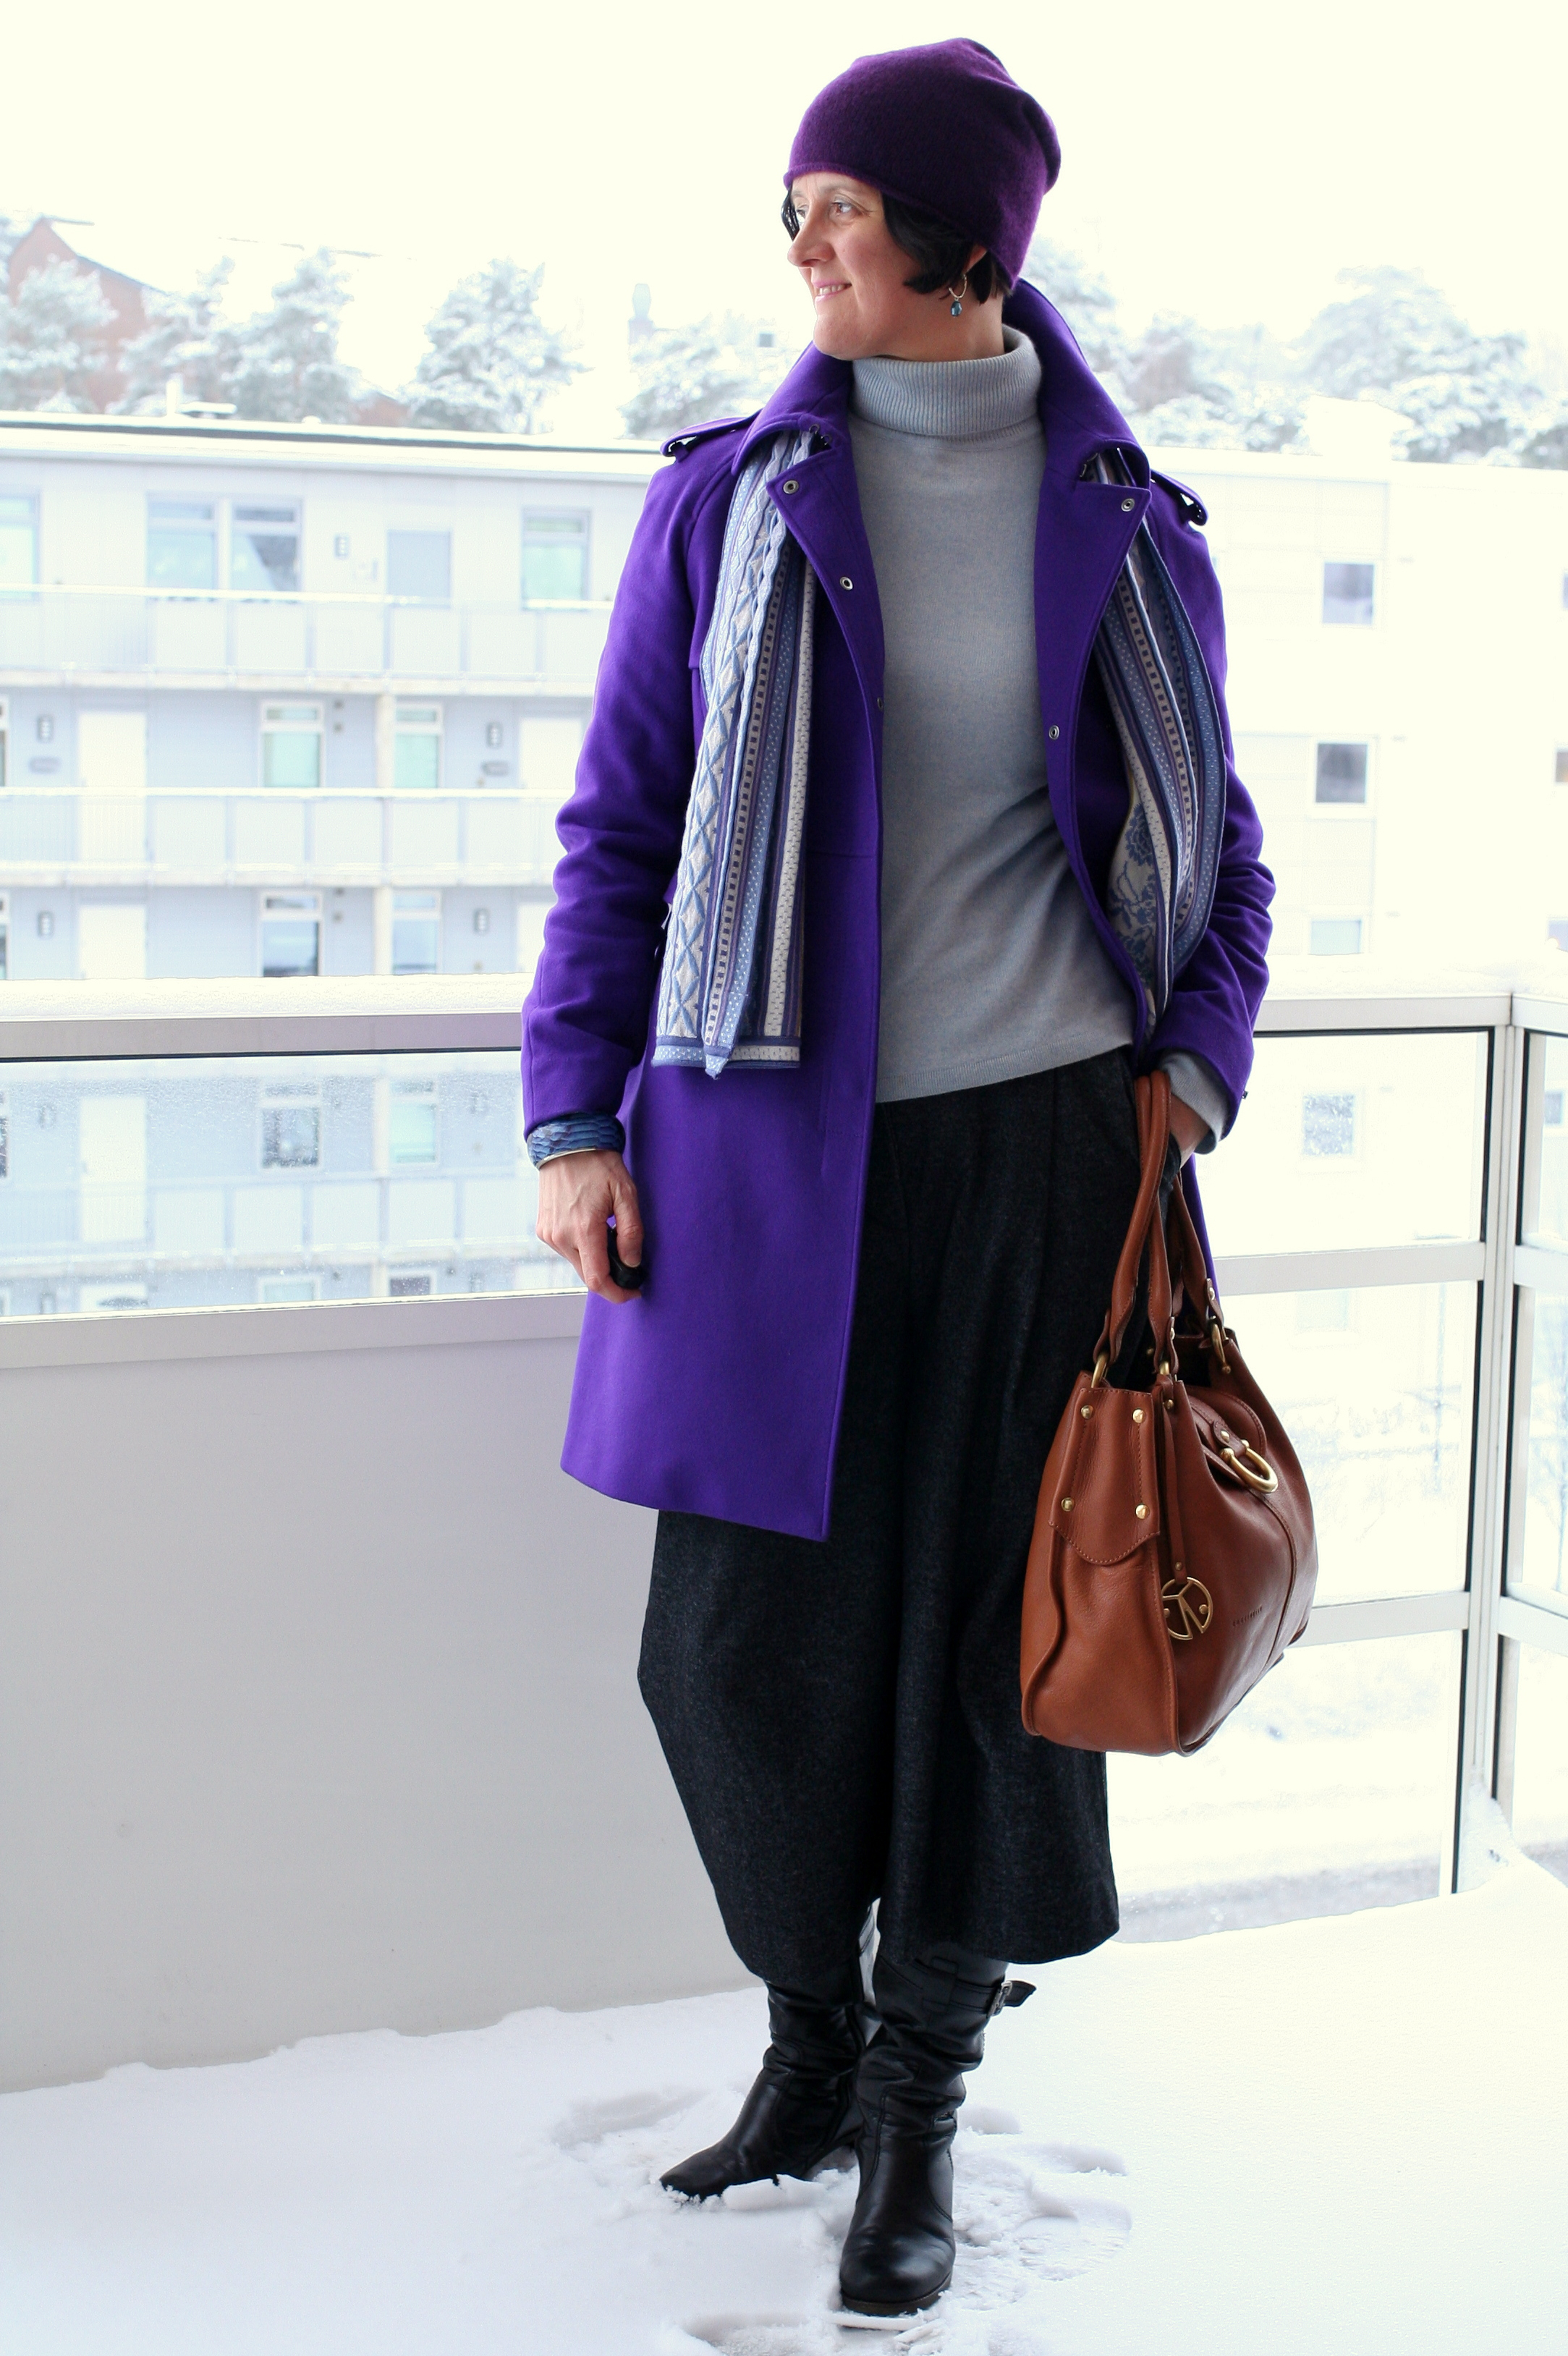 Tall Girl's Fashion // Styling culottes with a fitted turtleneck